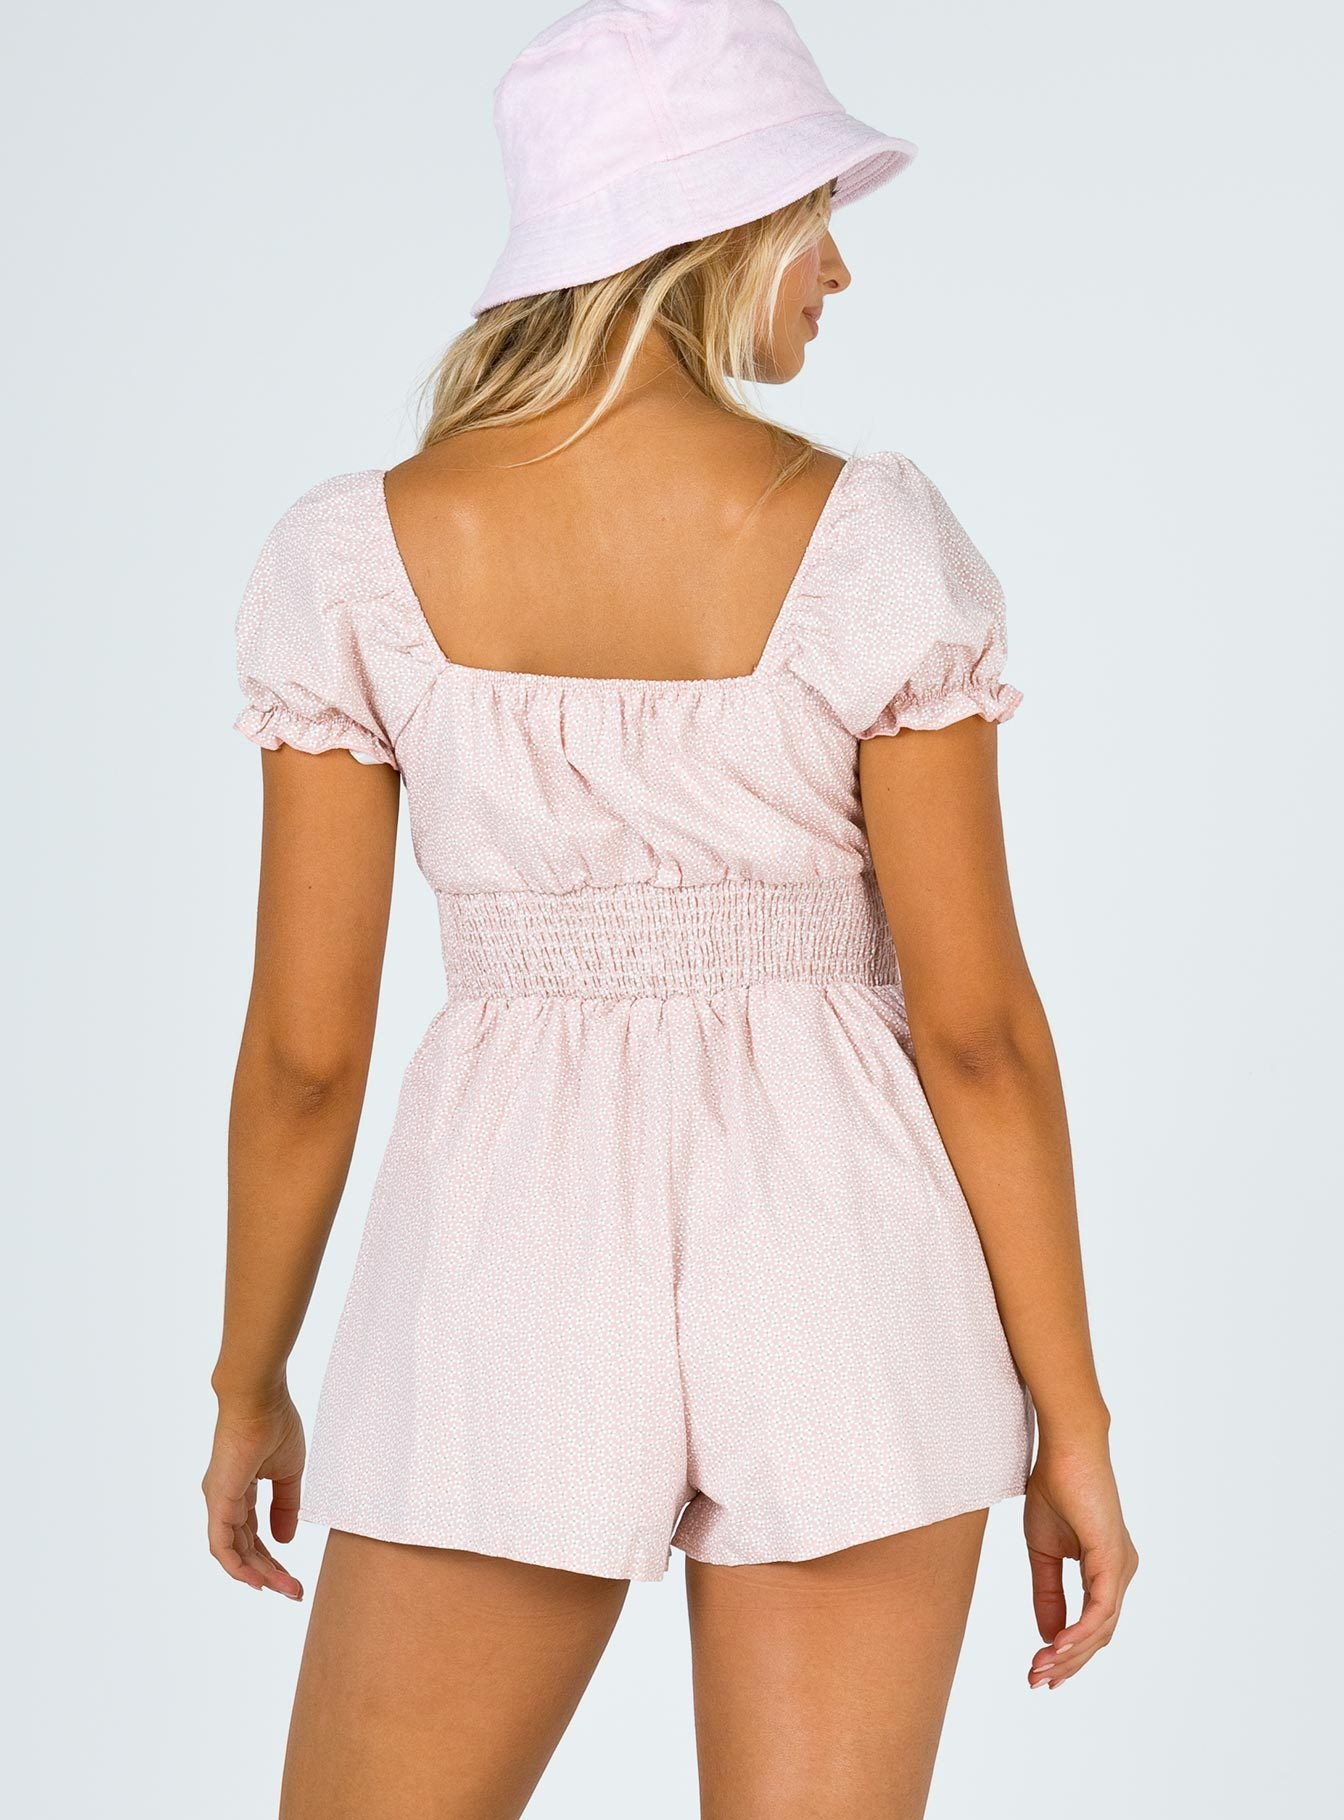 Merauke Playsuit